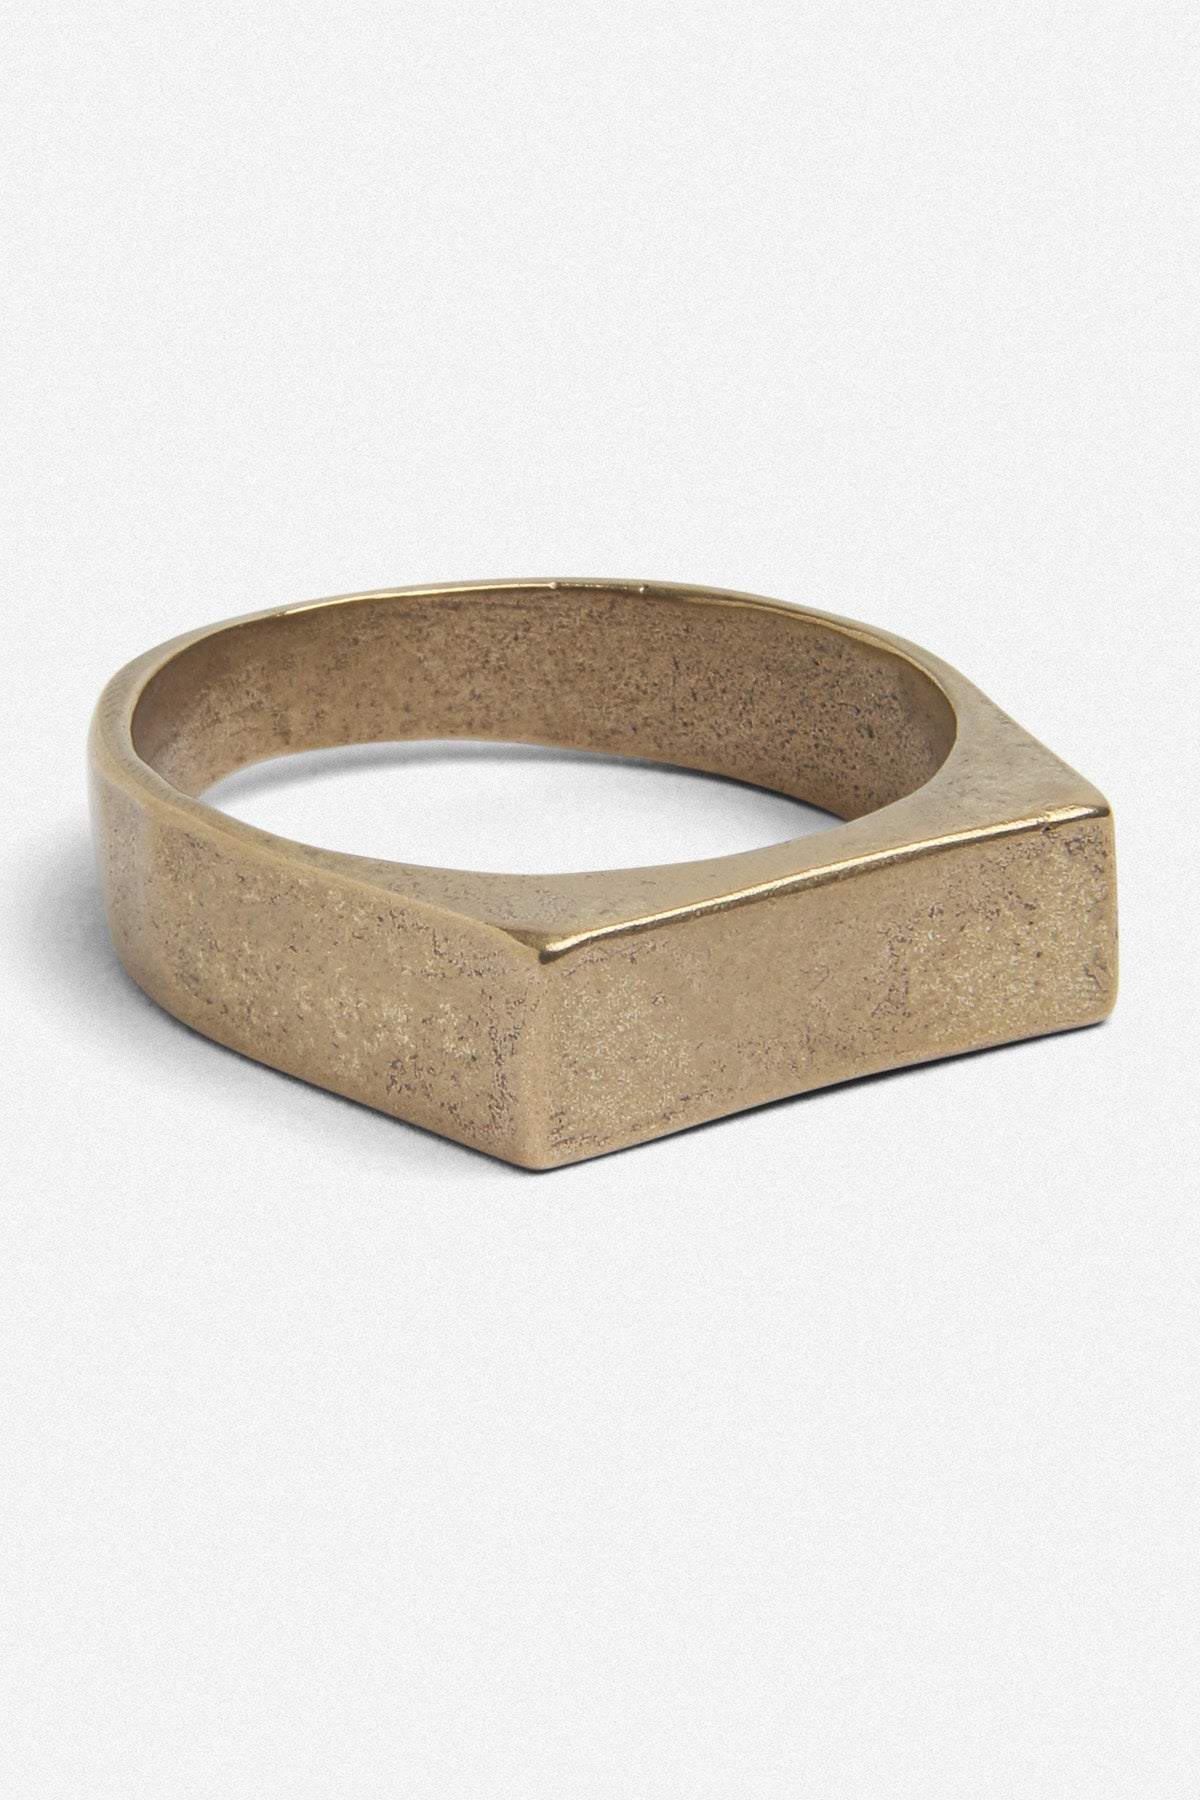 SIGNET BAR RING IN GOLD BRONZE - Fortune Goods